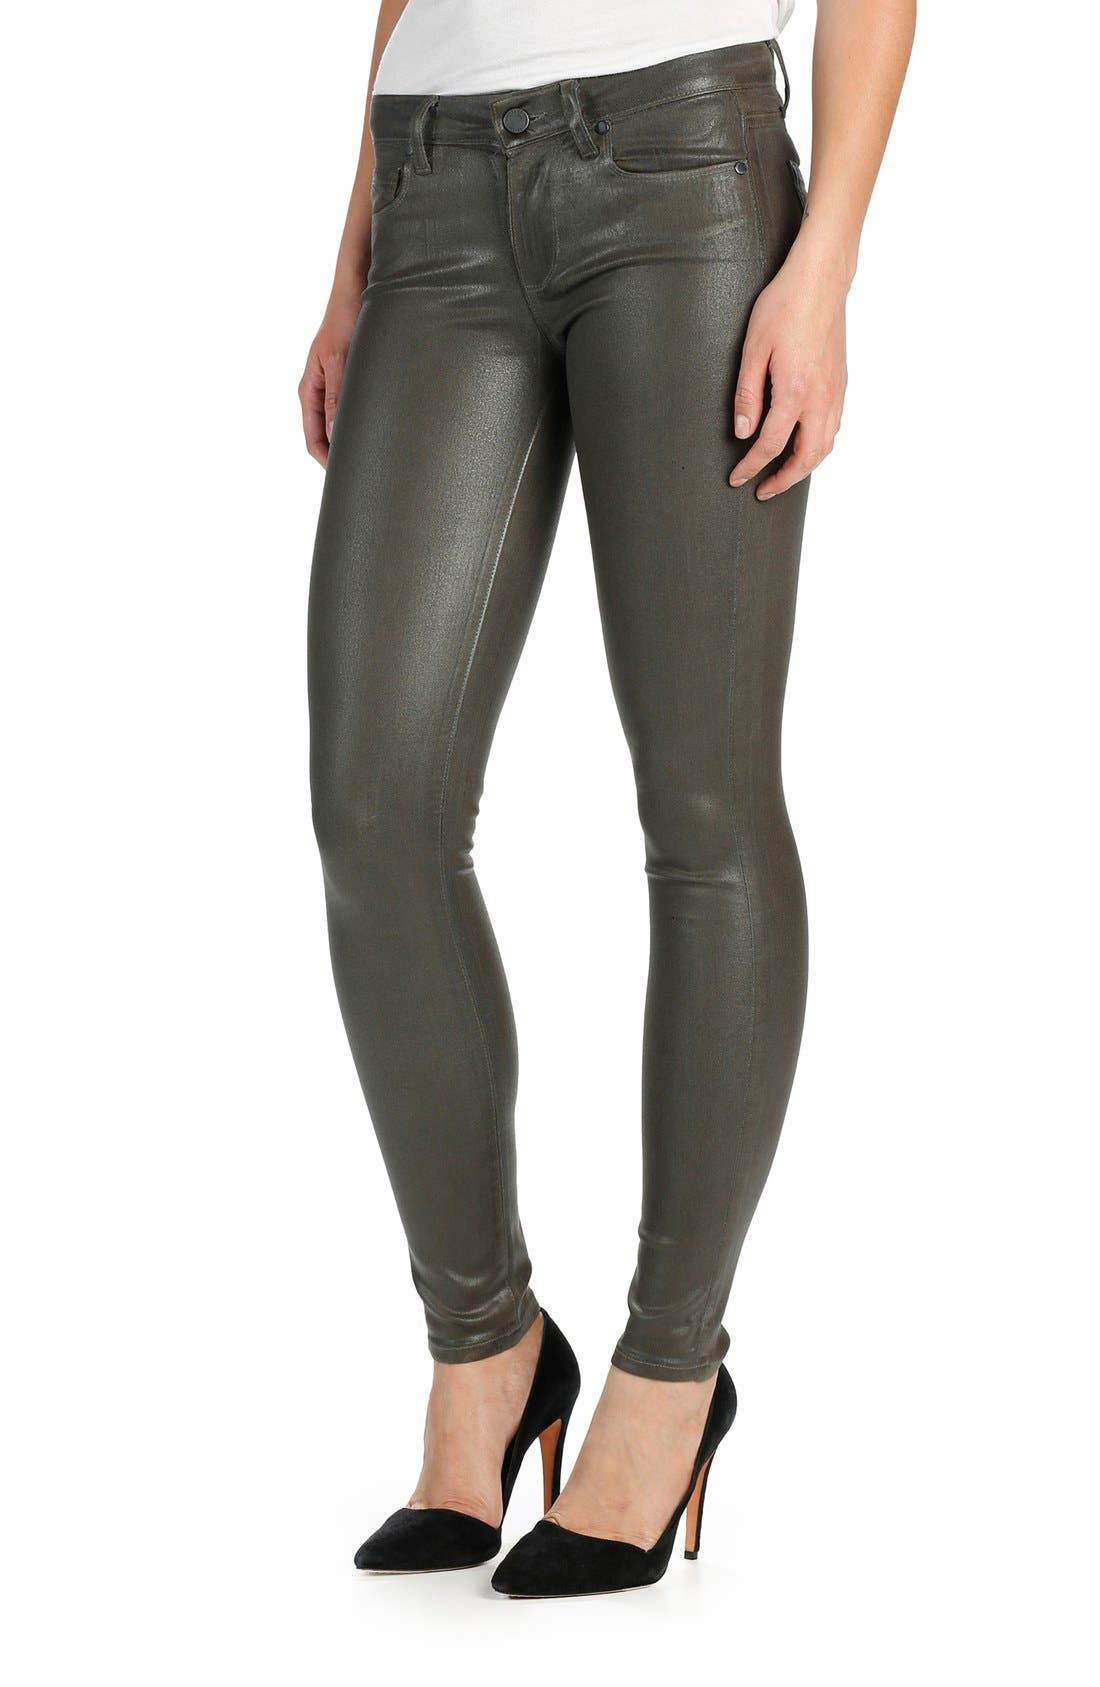 Transcend Verdugo Coated Ultra Skinny Jeans,                             Alternate thumbnail 3, color,                             Army Luxe Coating